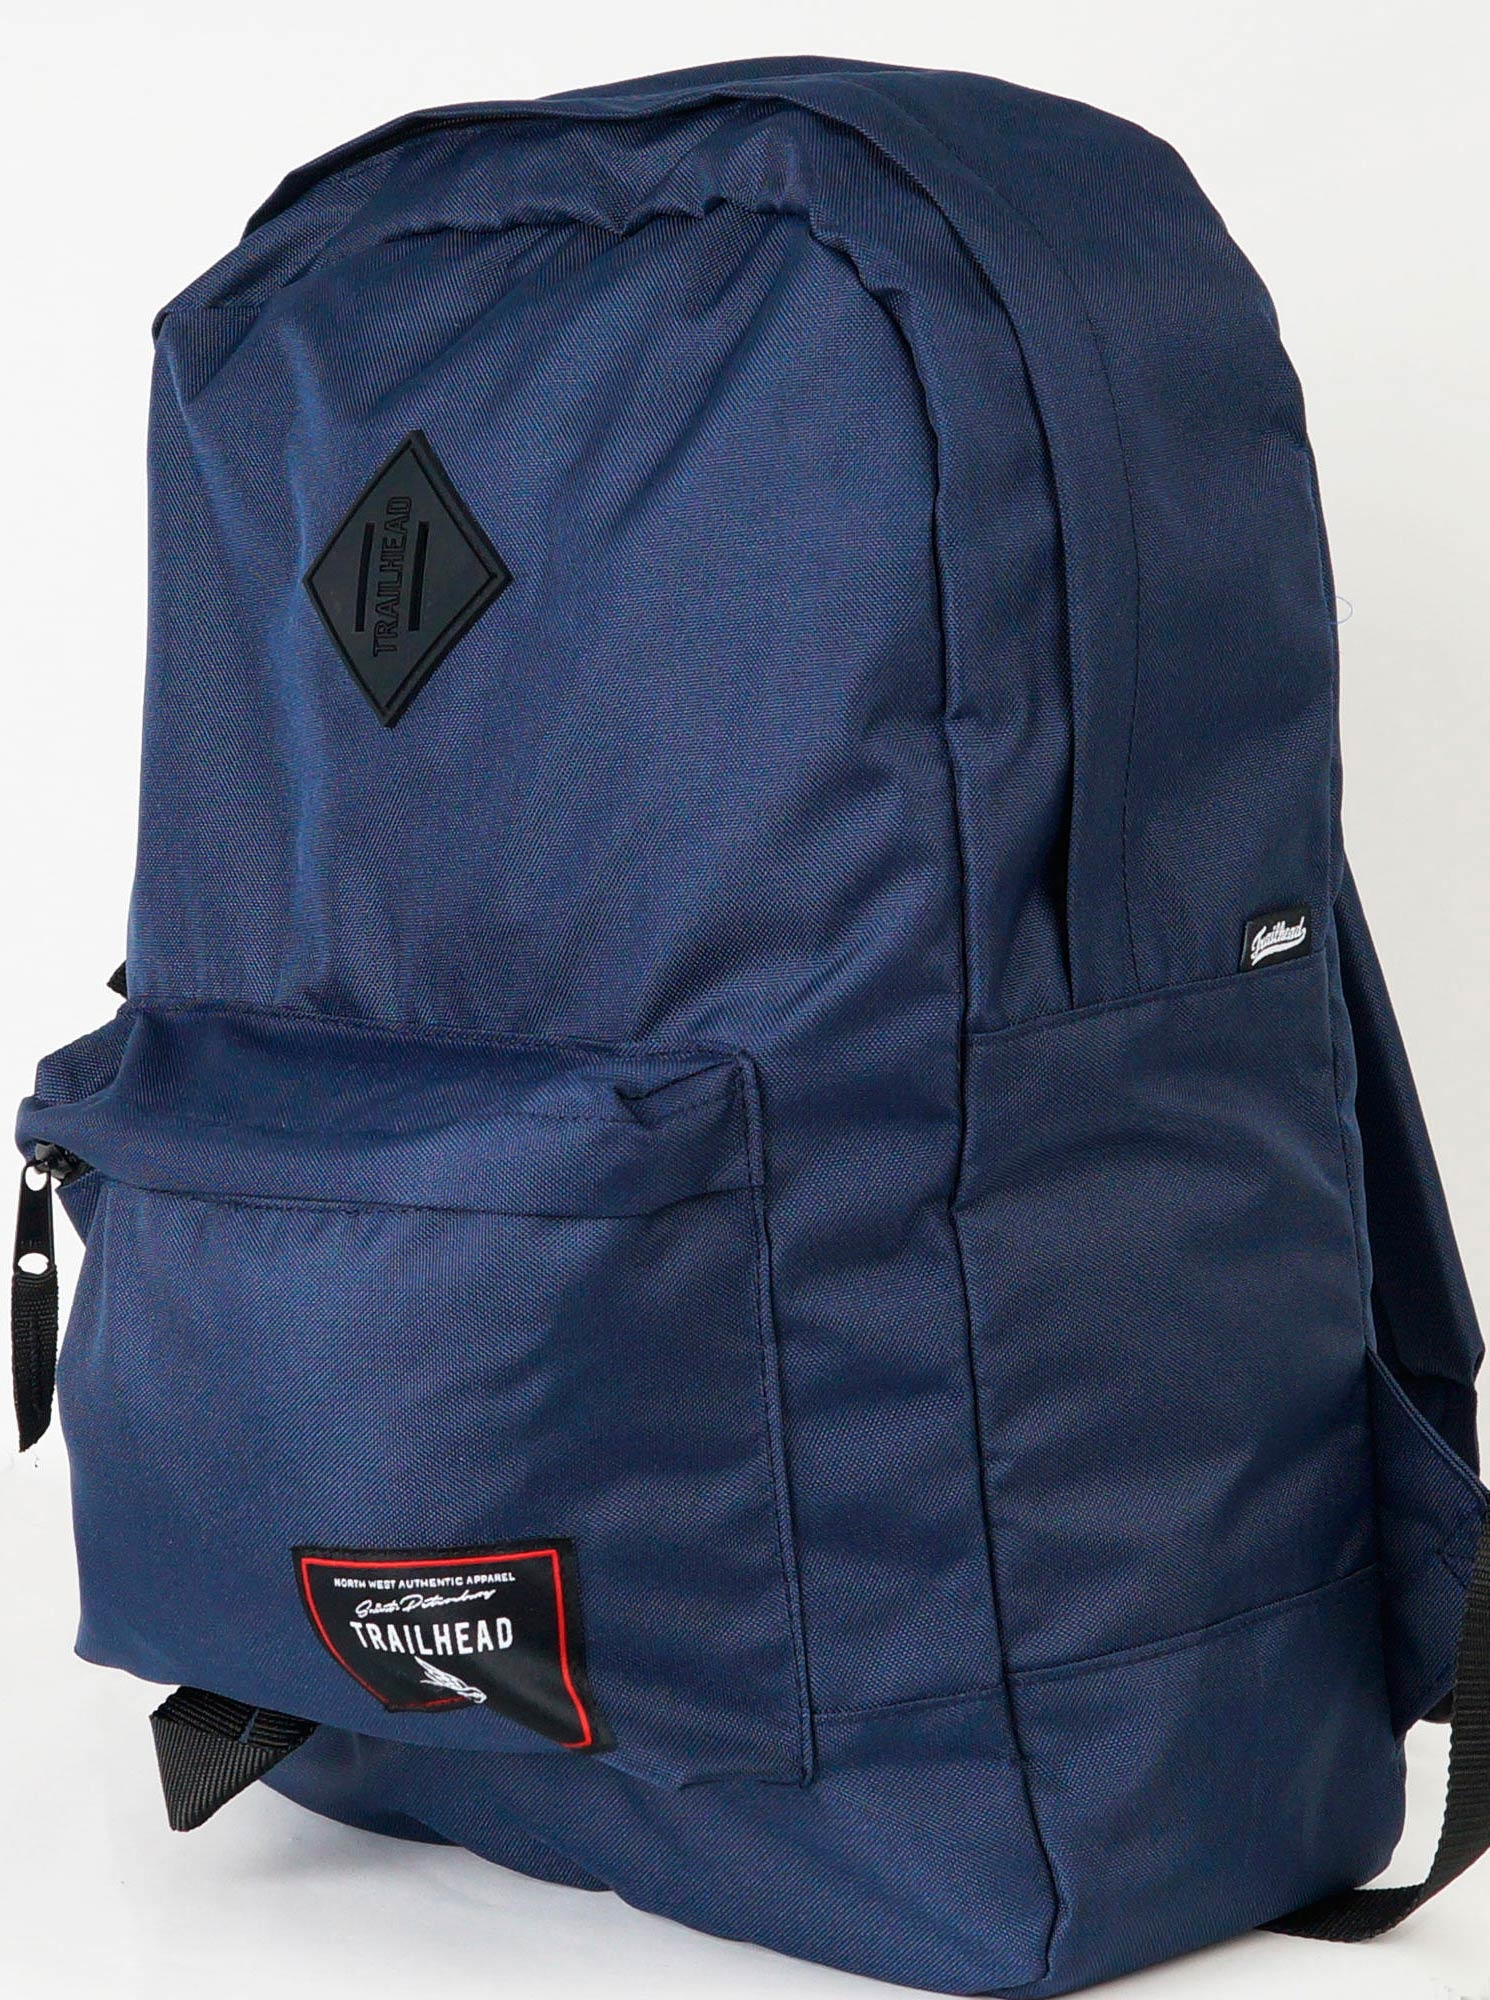 Рюкзак Trailhead BAG0011-17 Синий, BAG0011-17